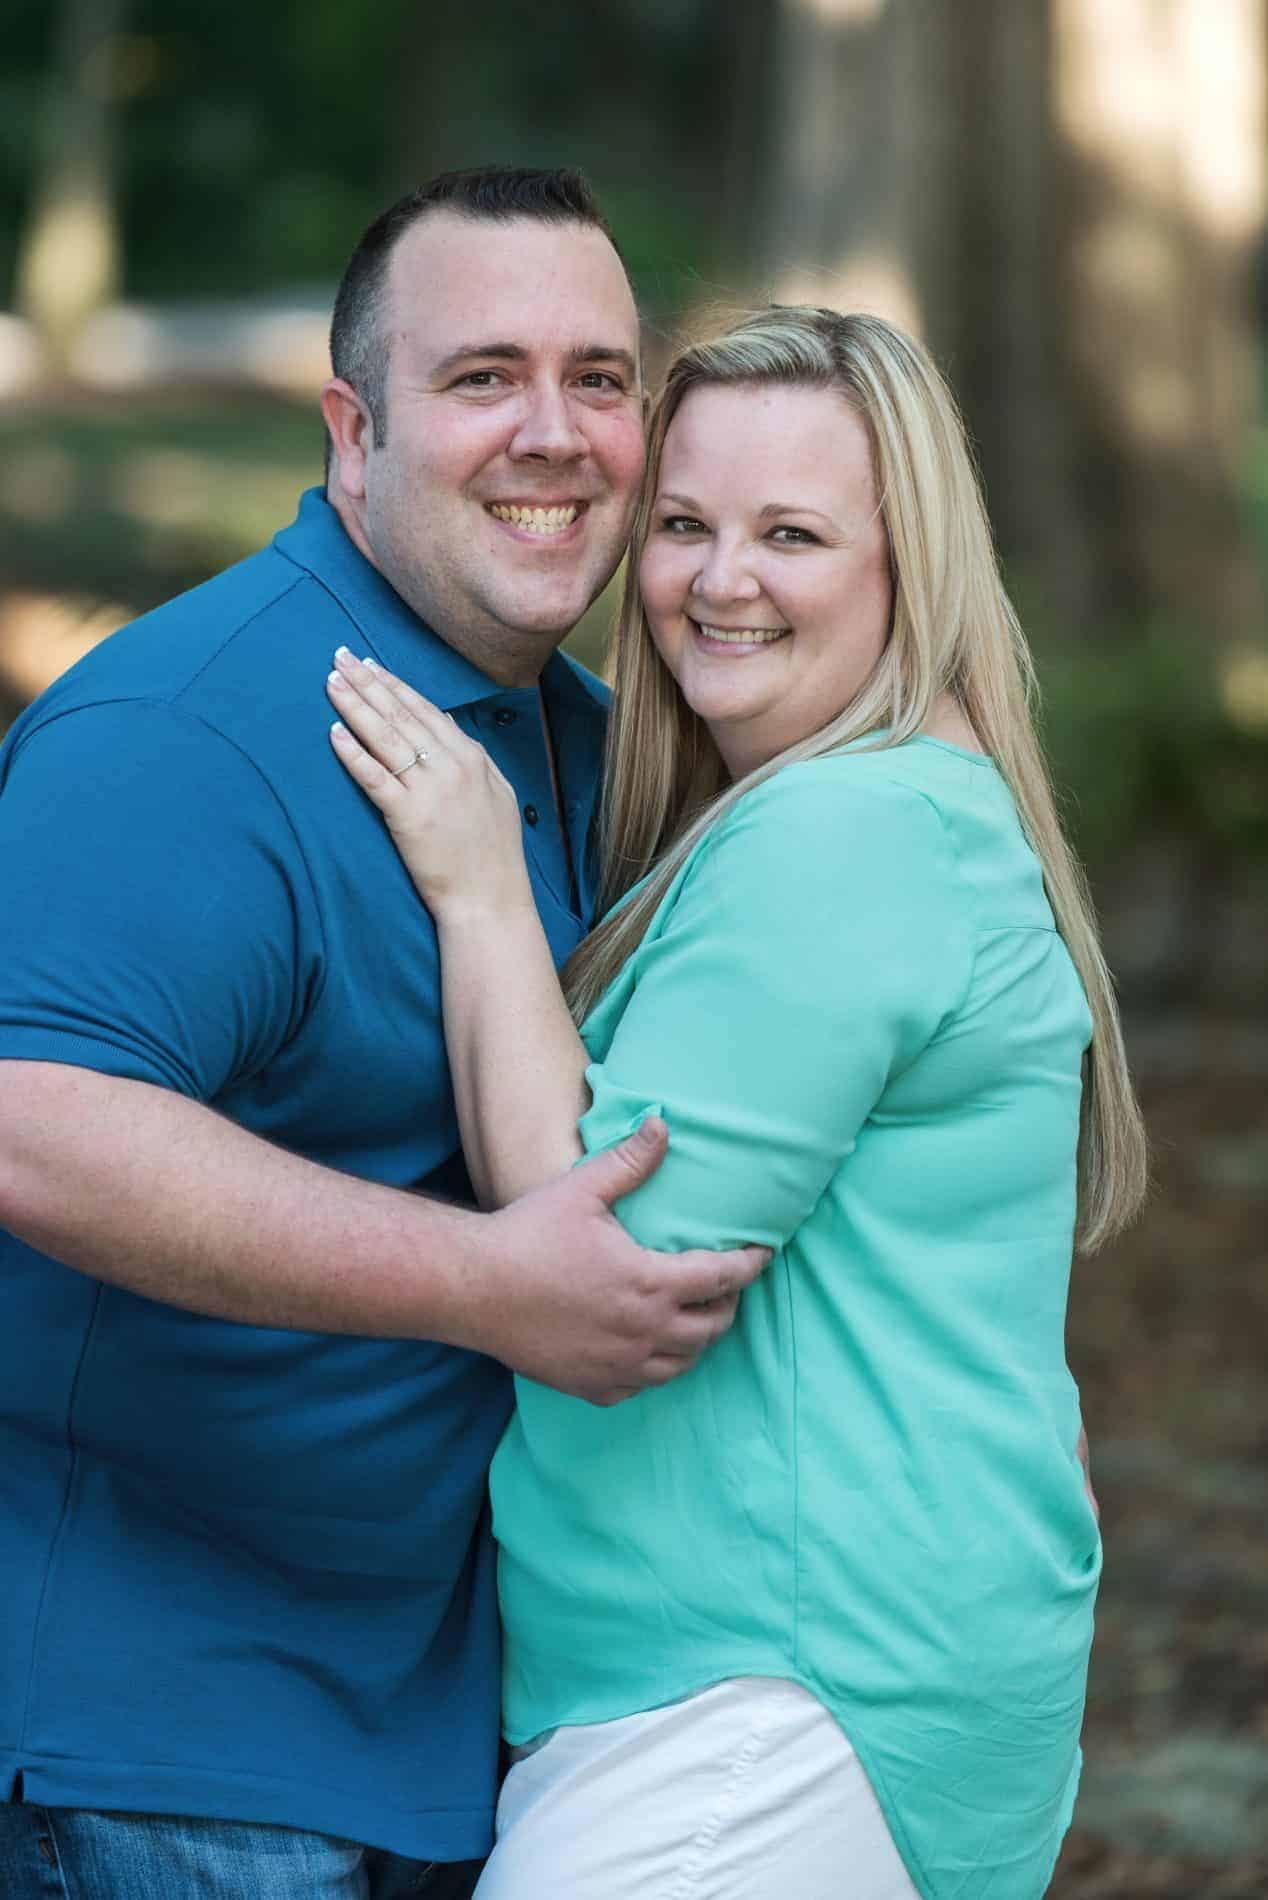 Beautiful outdoor portrait of engaged couple